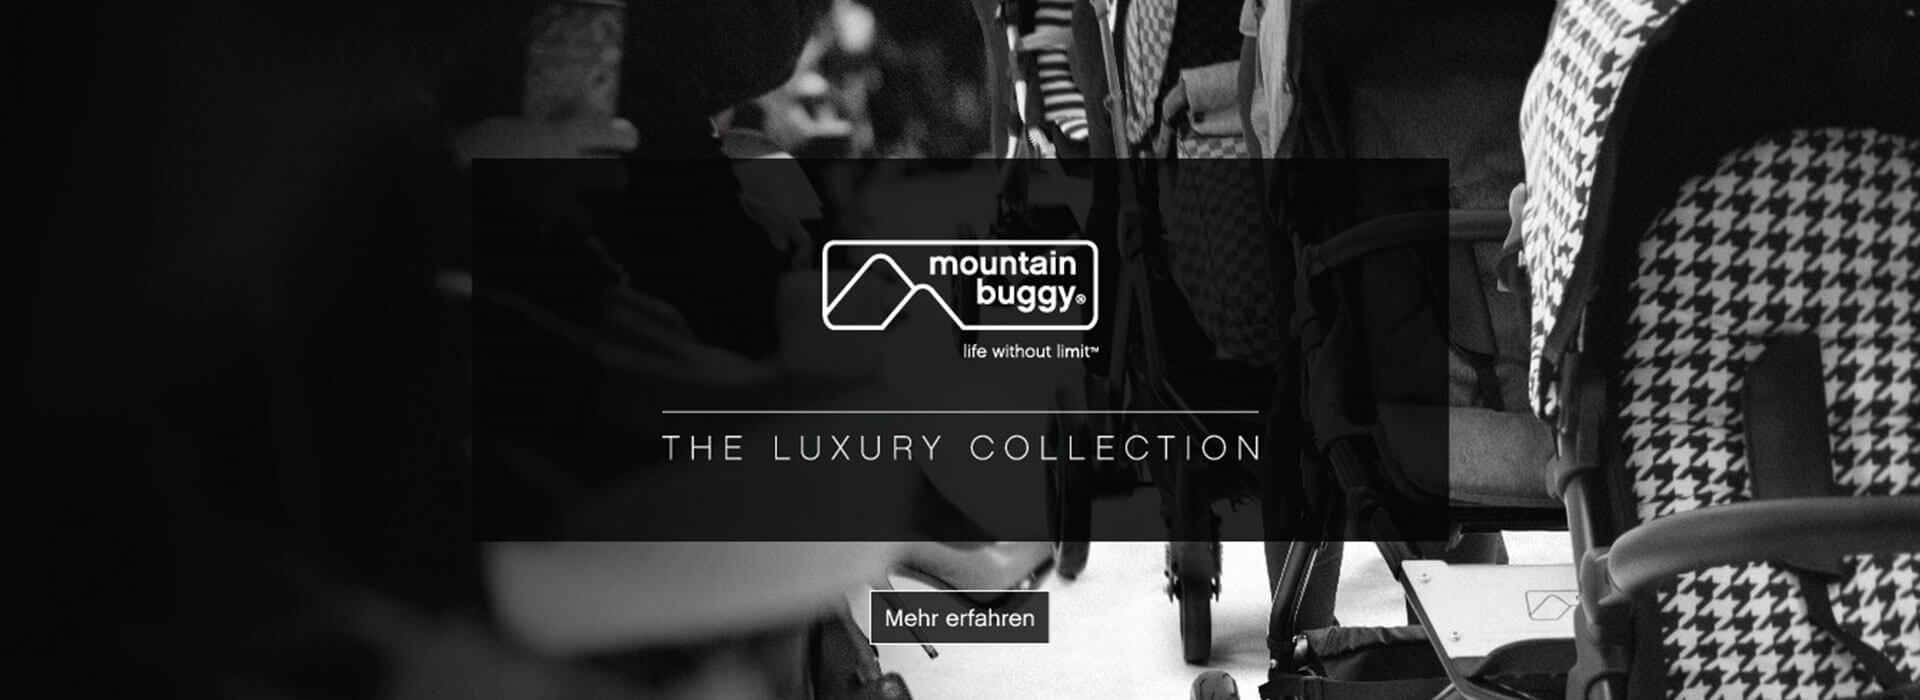 Entdecke die Mountain Buggy Luxury Collection